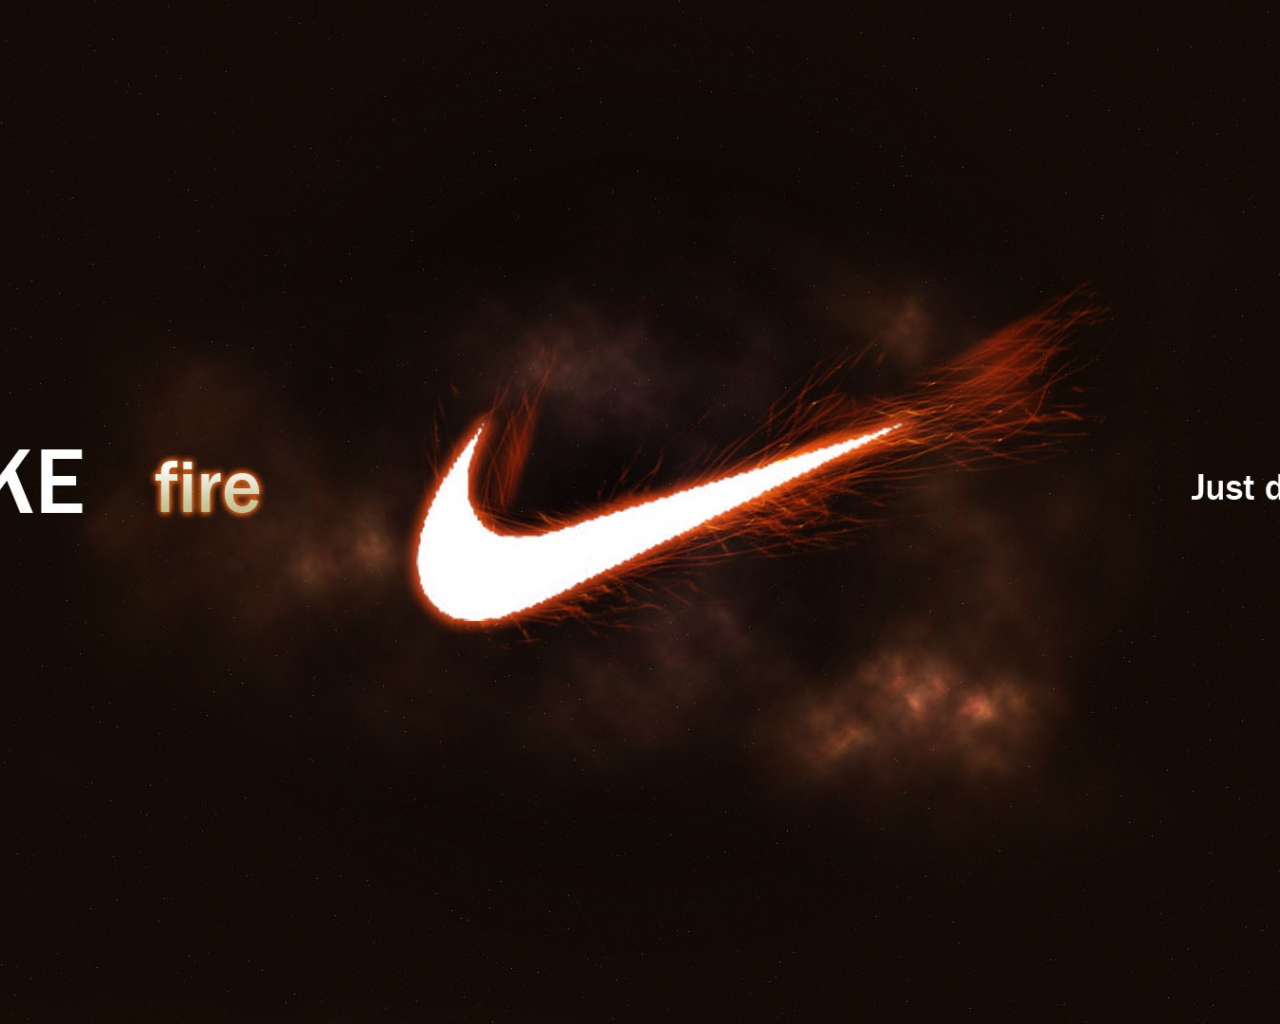 free download wallpaper 1920x1080 nike fire logo sports brand full hd 1080p hd 1920x1080 for your desktop mobile tablet explore 42 nike wallpaper hd 1080p nike hd wallpaper nike wallpaper 1920x1080 nike fire logo